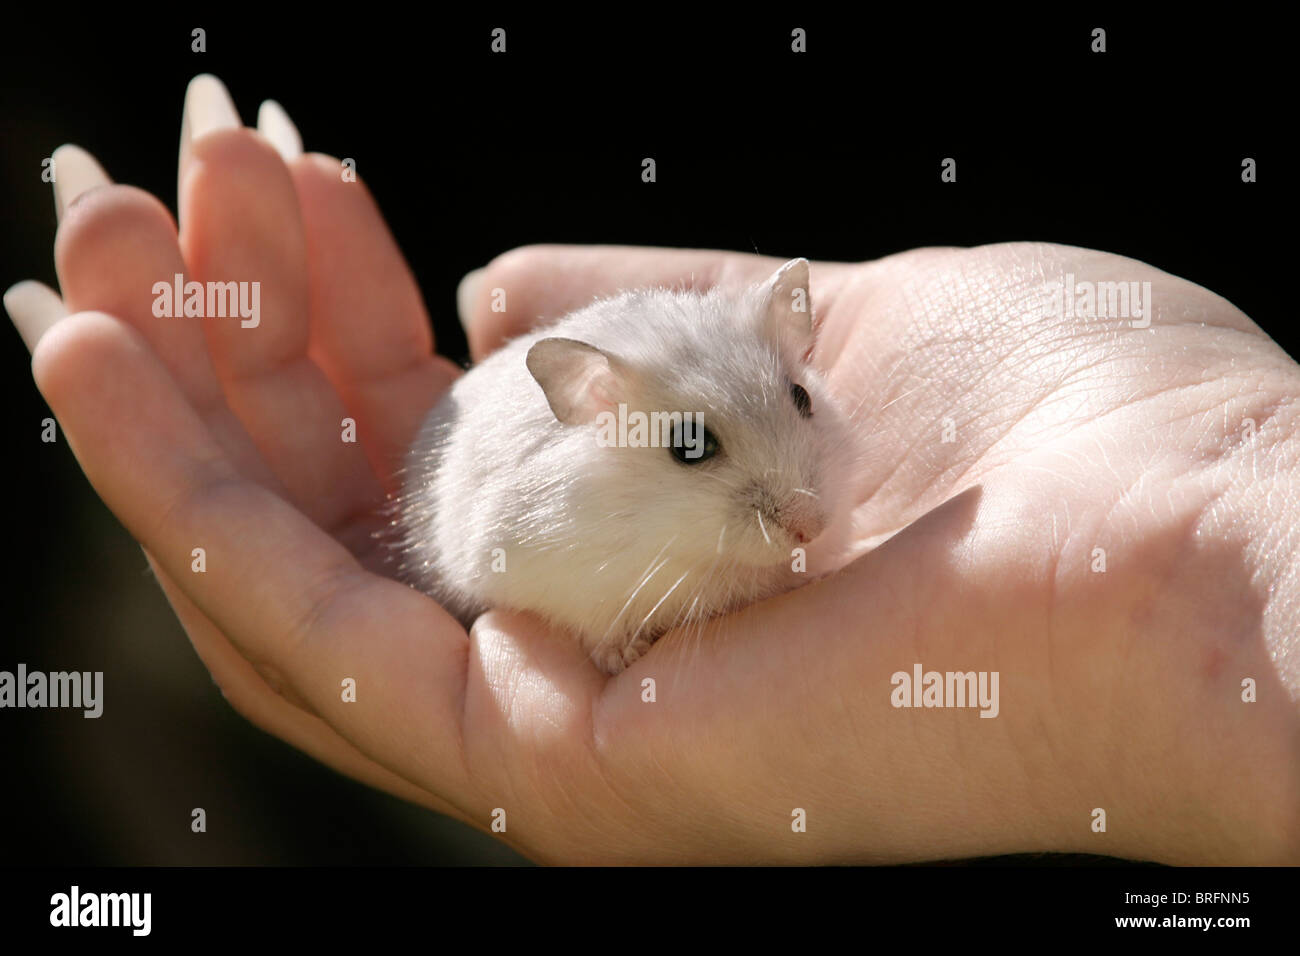 dwarf hamster in a hand - Stock Image